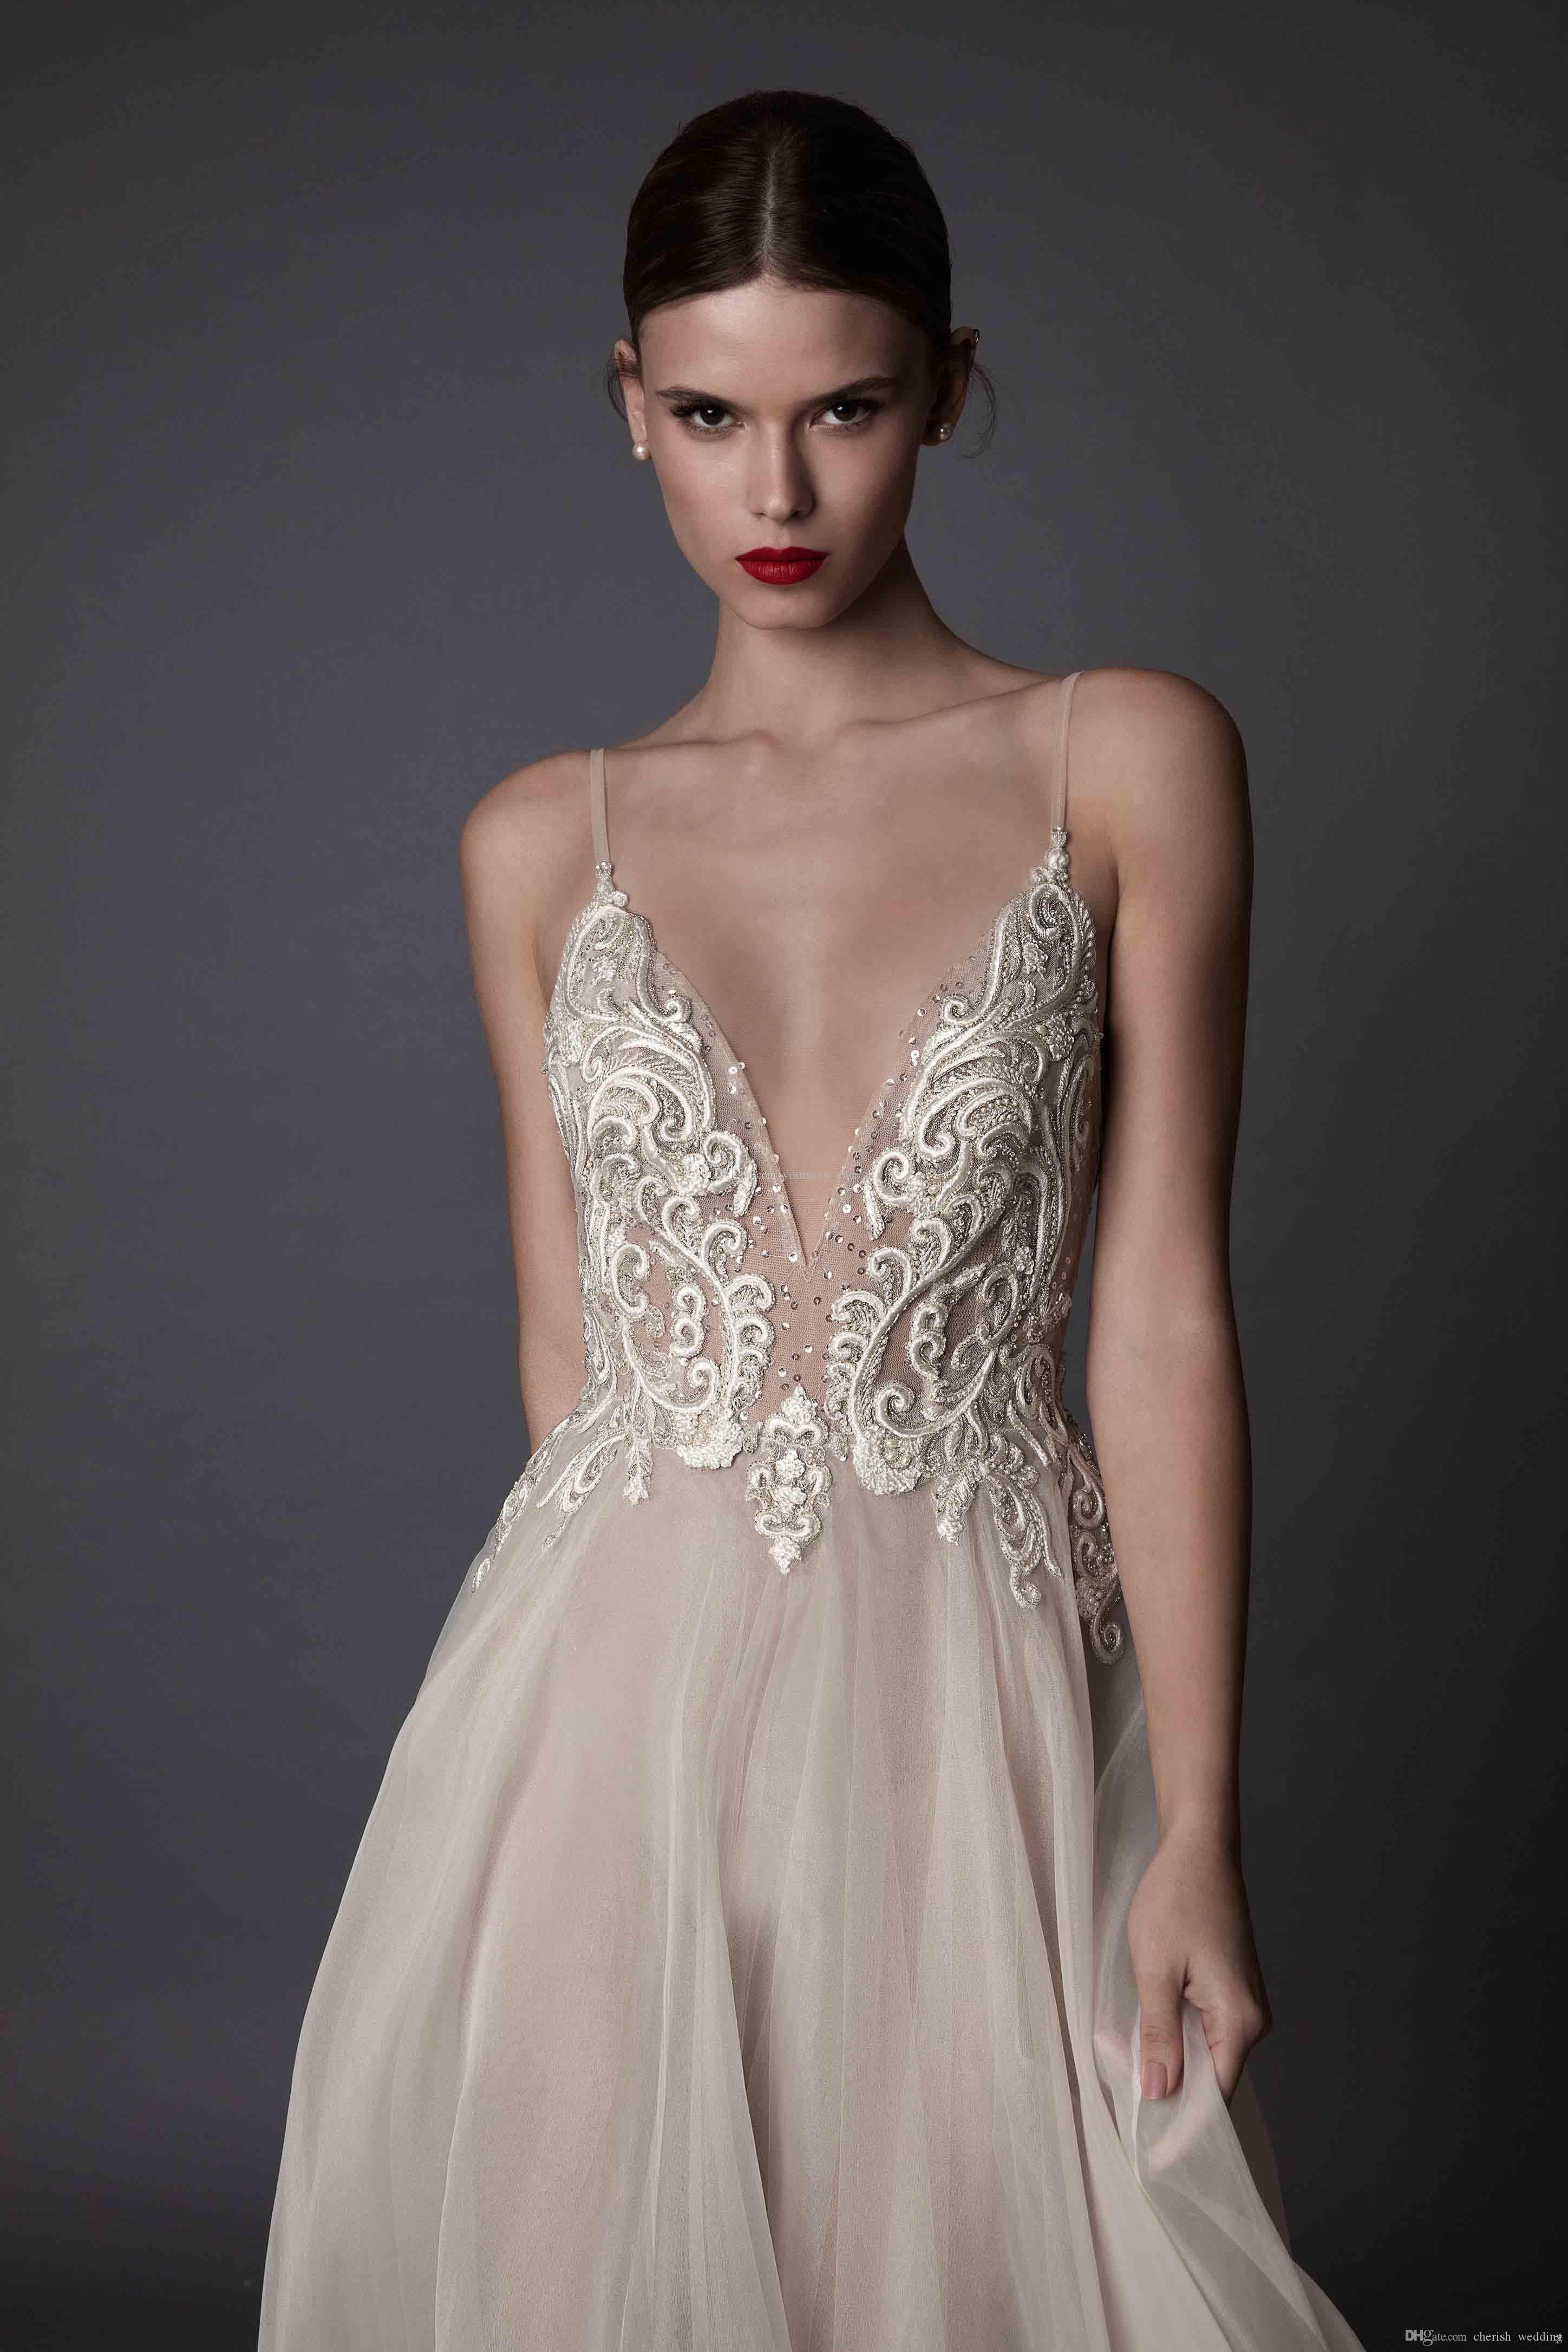 Bohemian Berta Wedding Dresses 2017 A Line Illusion Bodice Deep V neck Lace Applique Backless Spaghetti Straps Organza Bridal Gowns